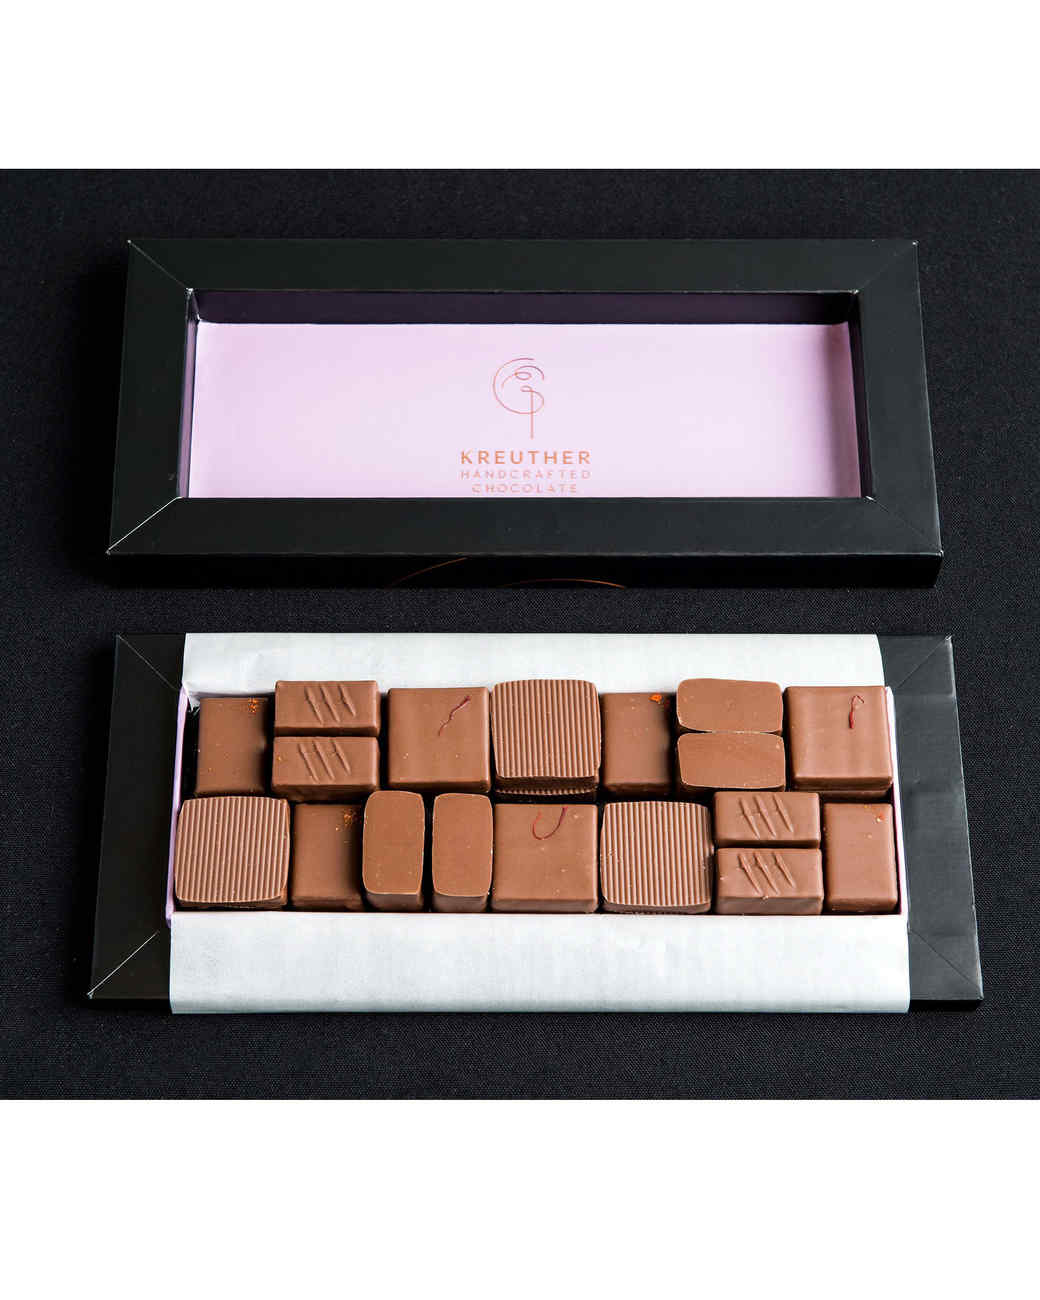 kreuther handcrafted choclate box gift box